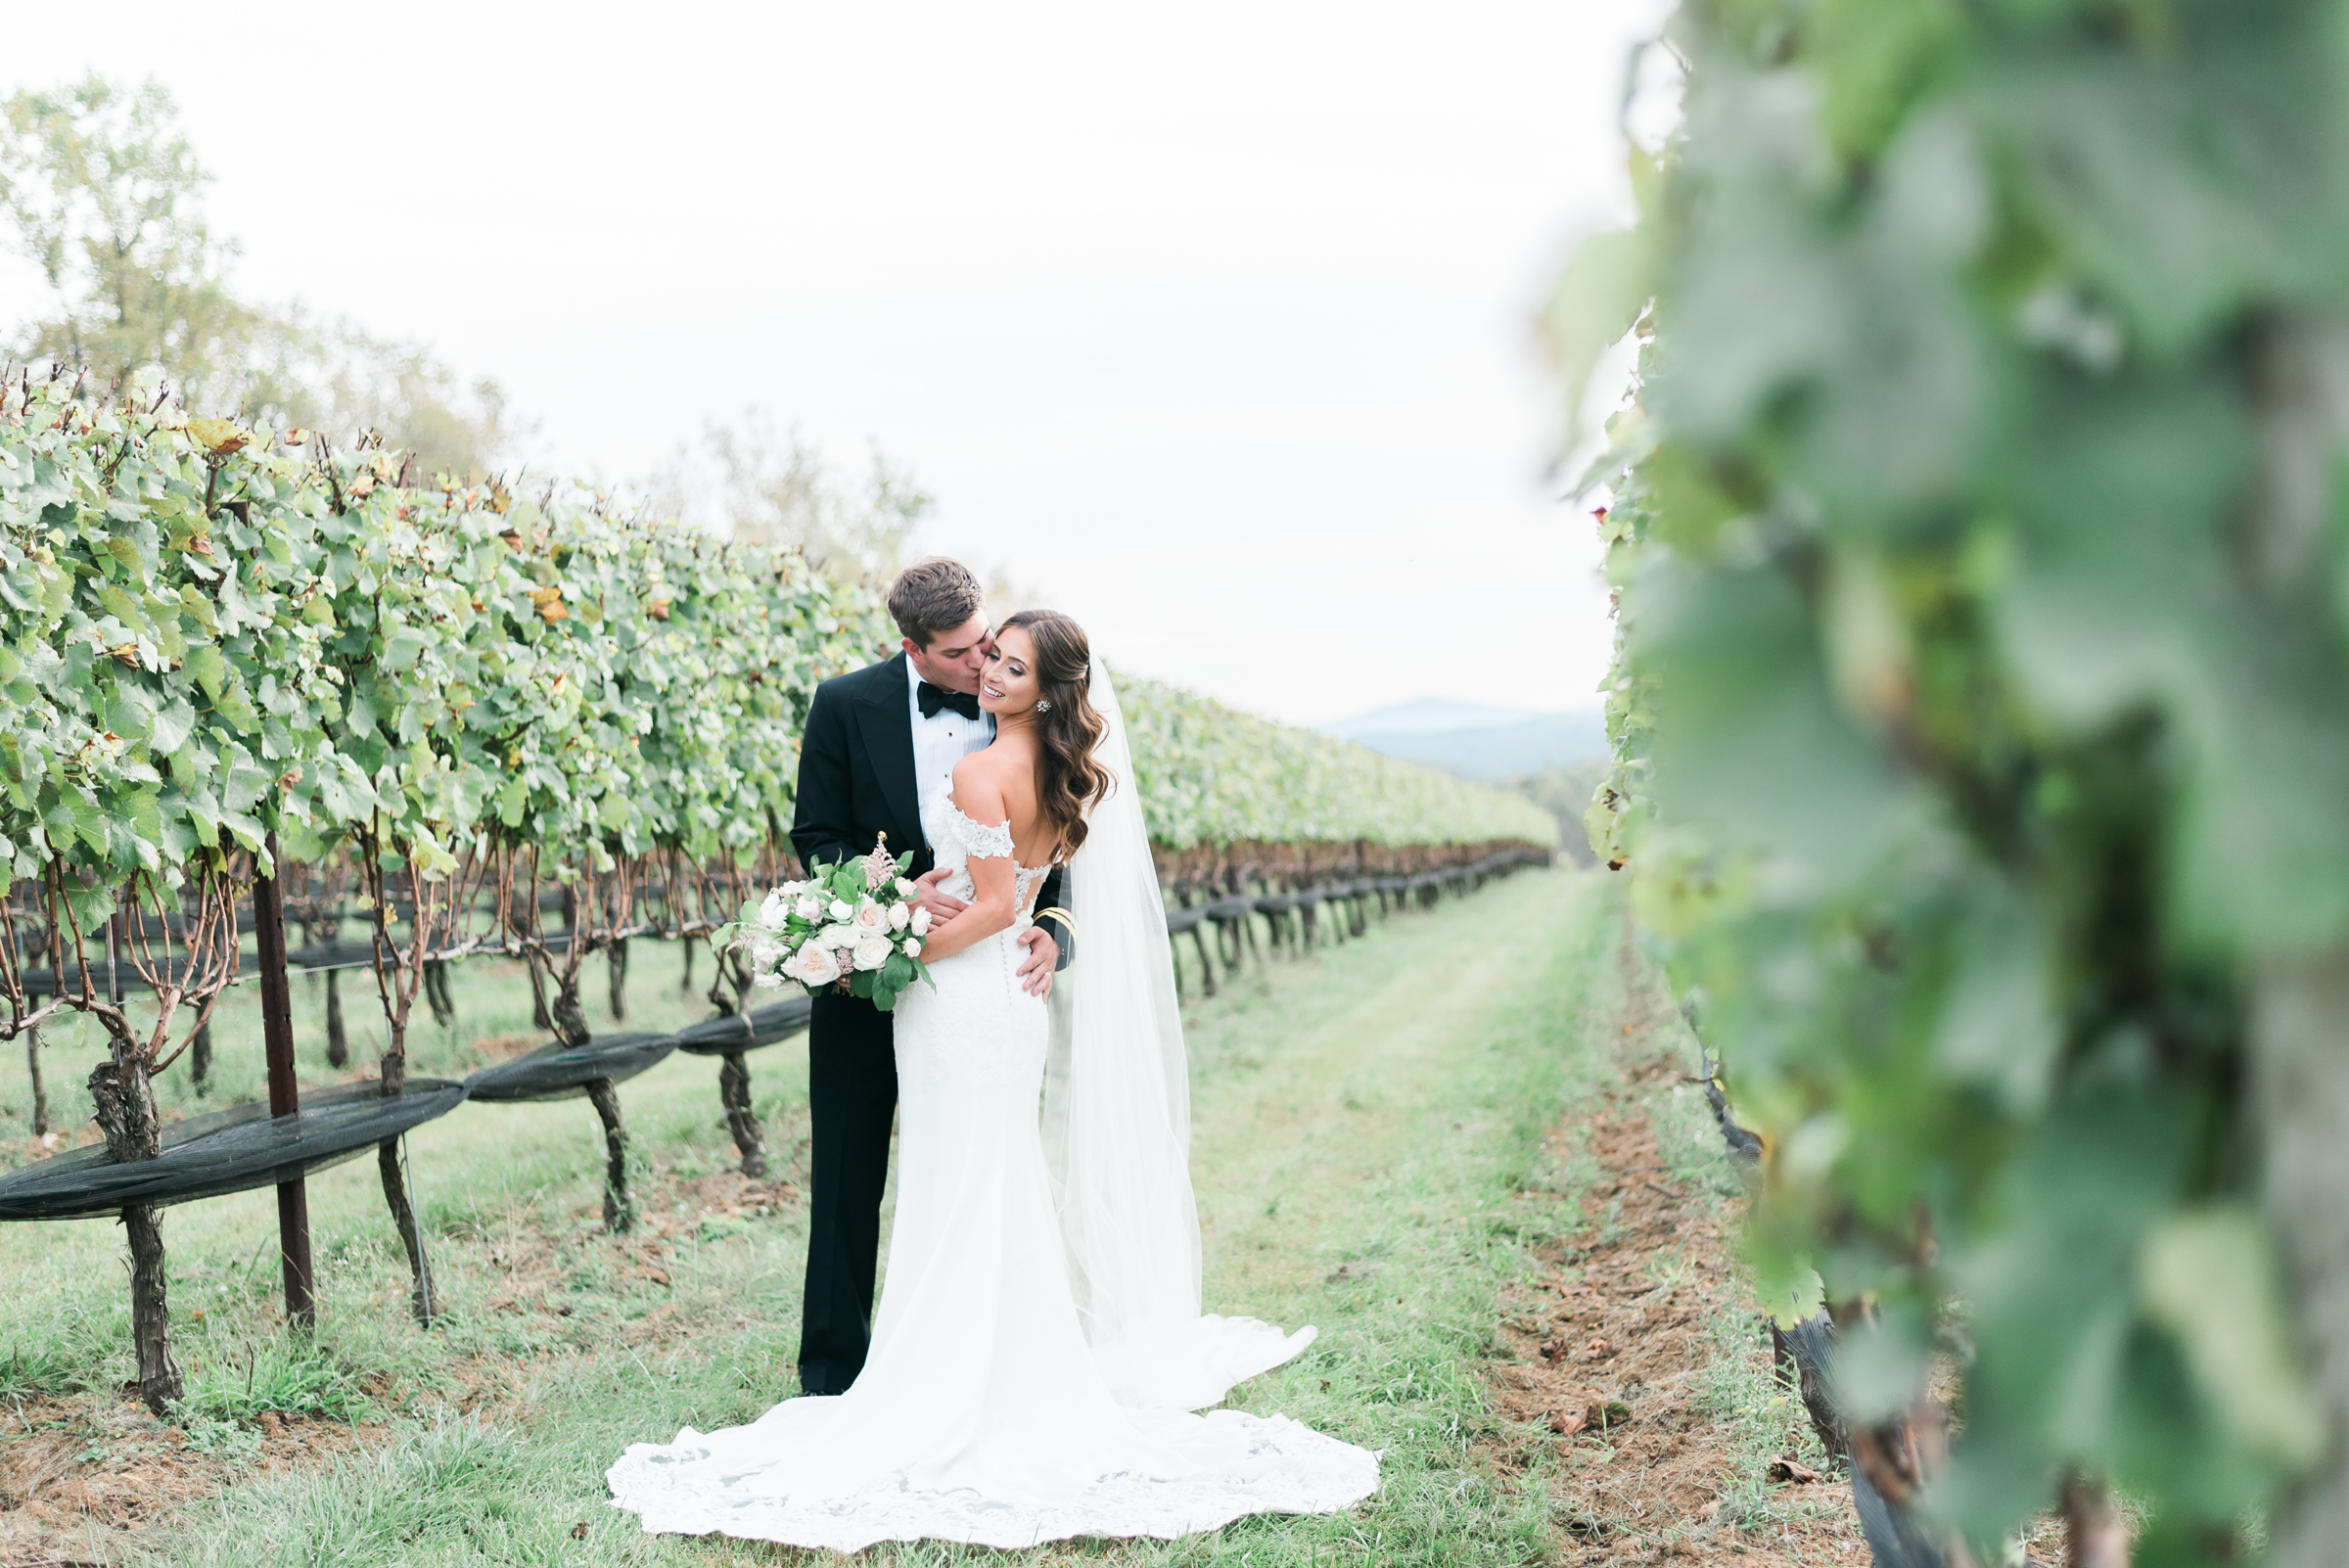 Stone-Tower-Winery-Wedding-Virginia-Wedding-Photography-by-wedding-photographer-Dami-Or-Photography-6.jpg